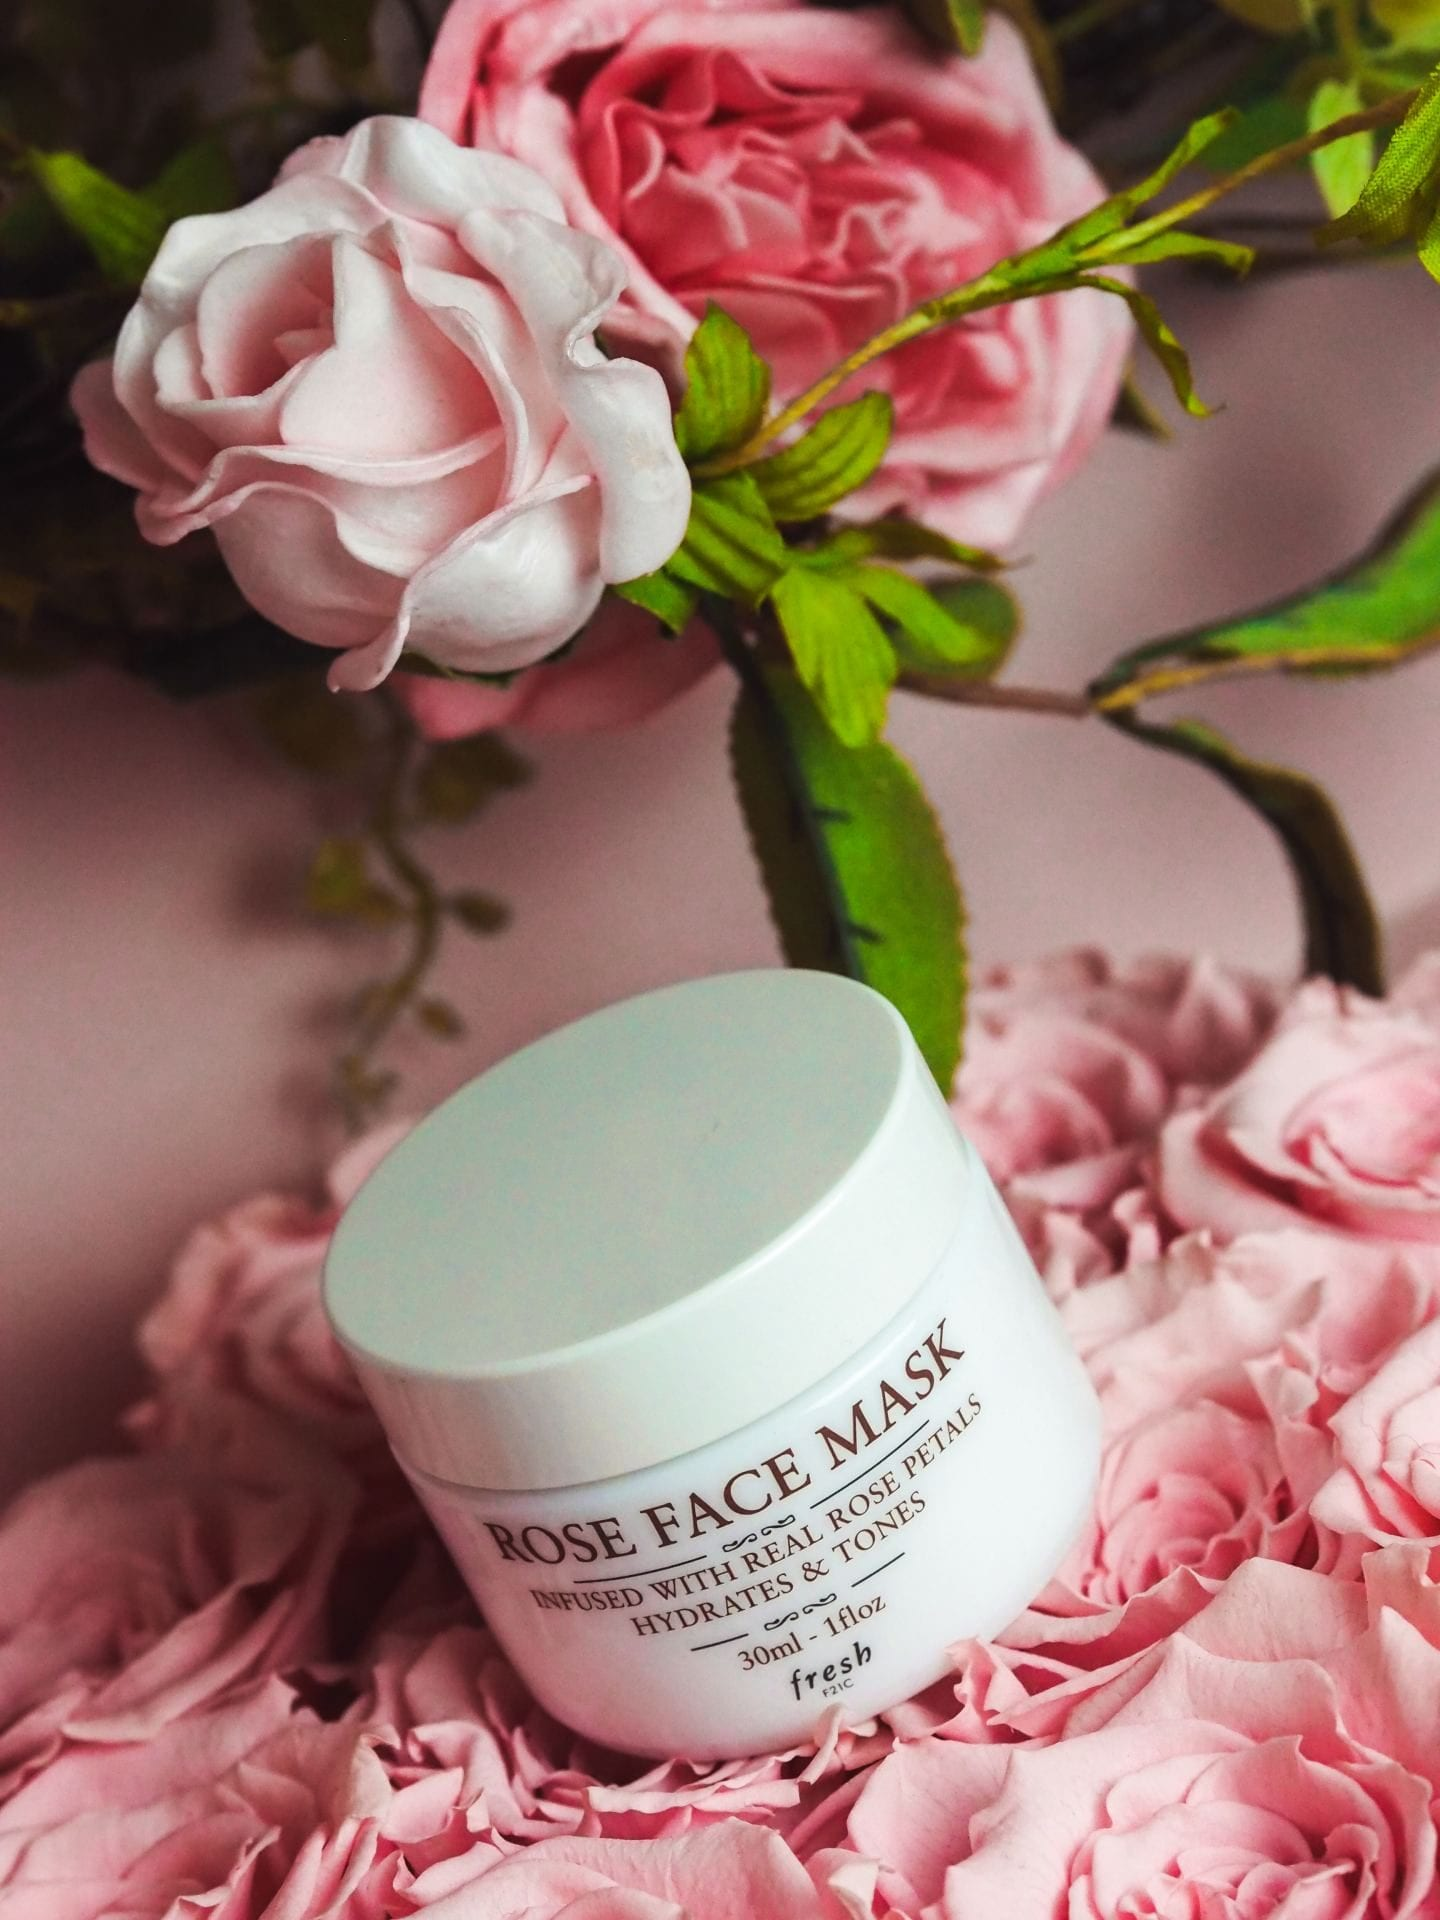 fresh cosmetics rose face mask skin care luxury